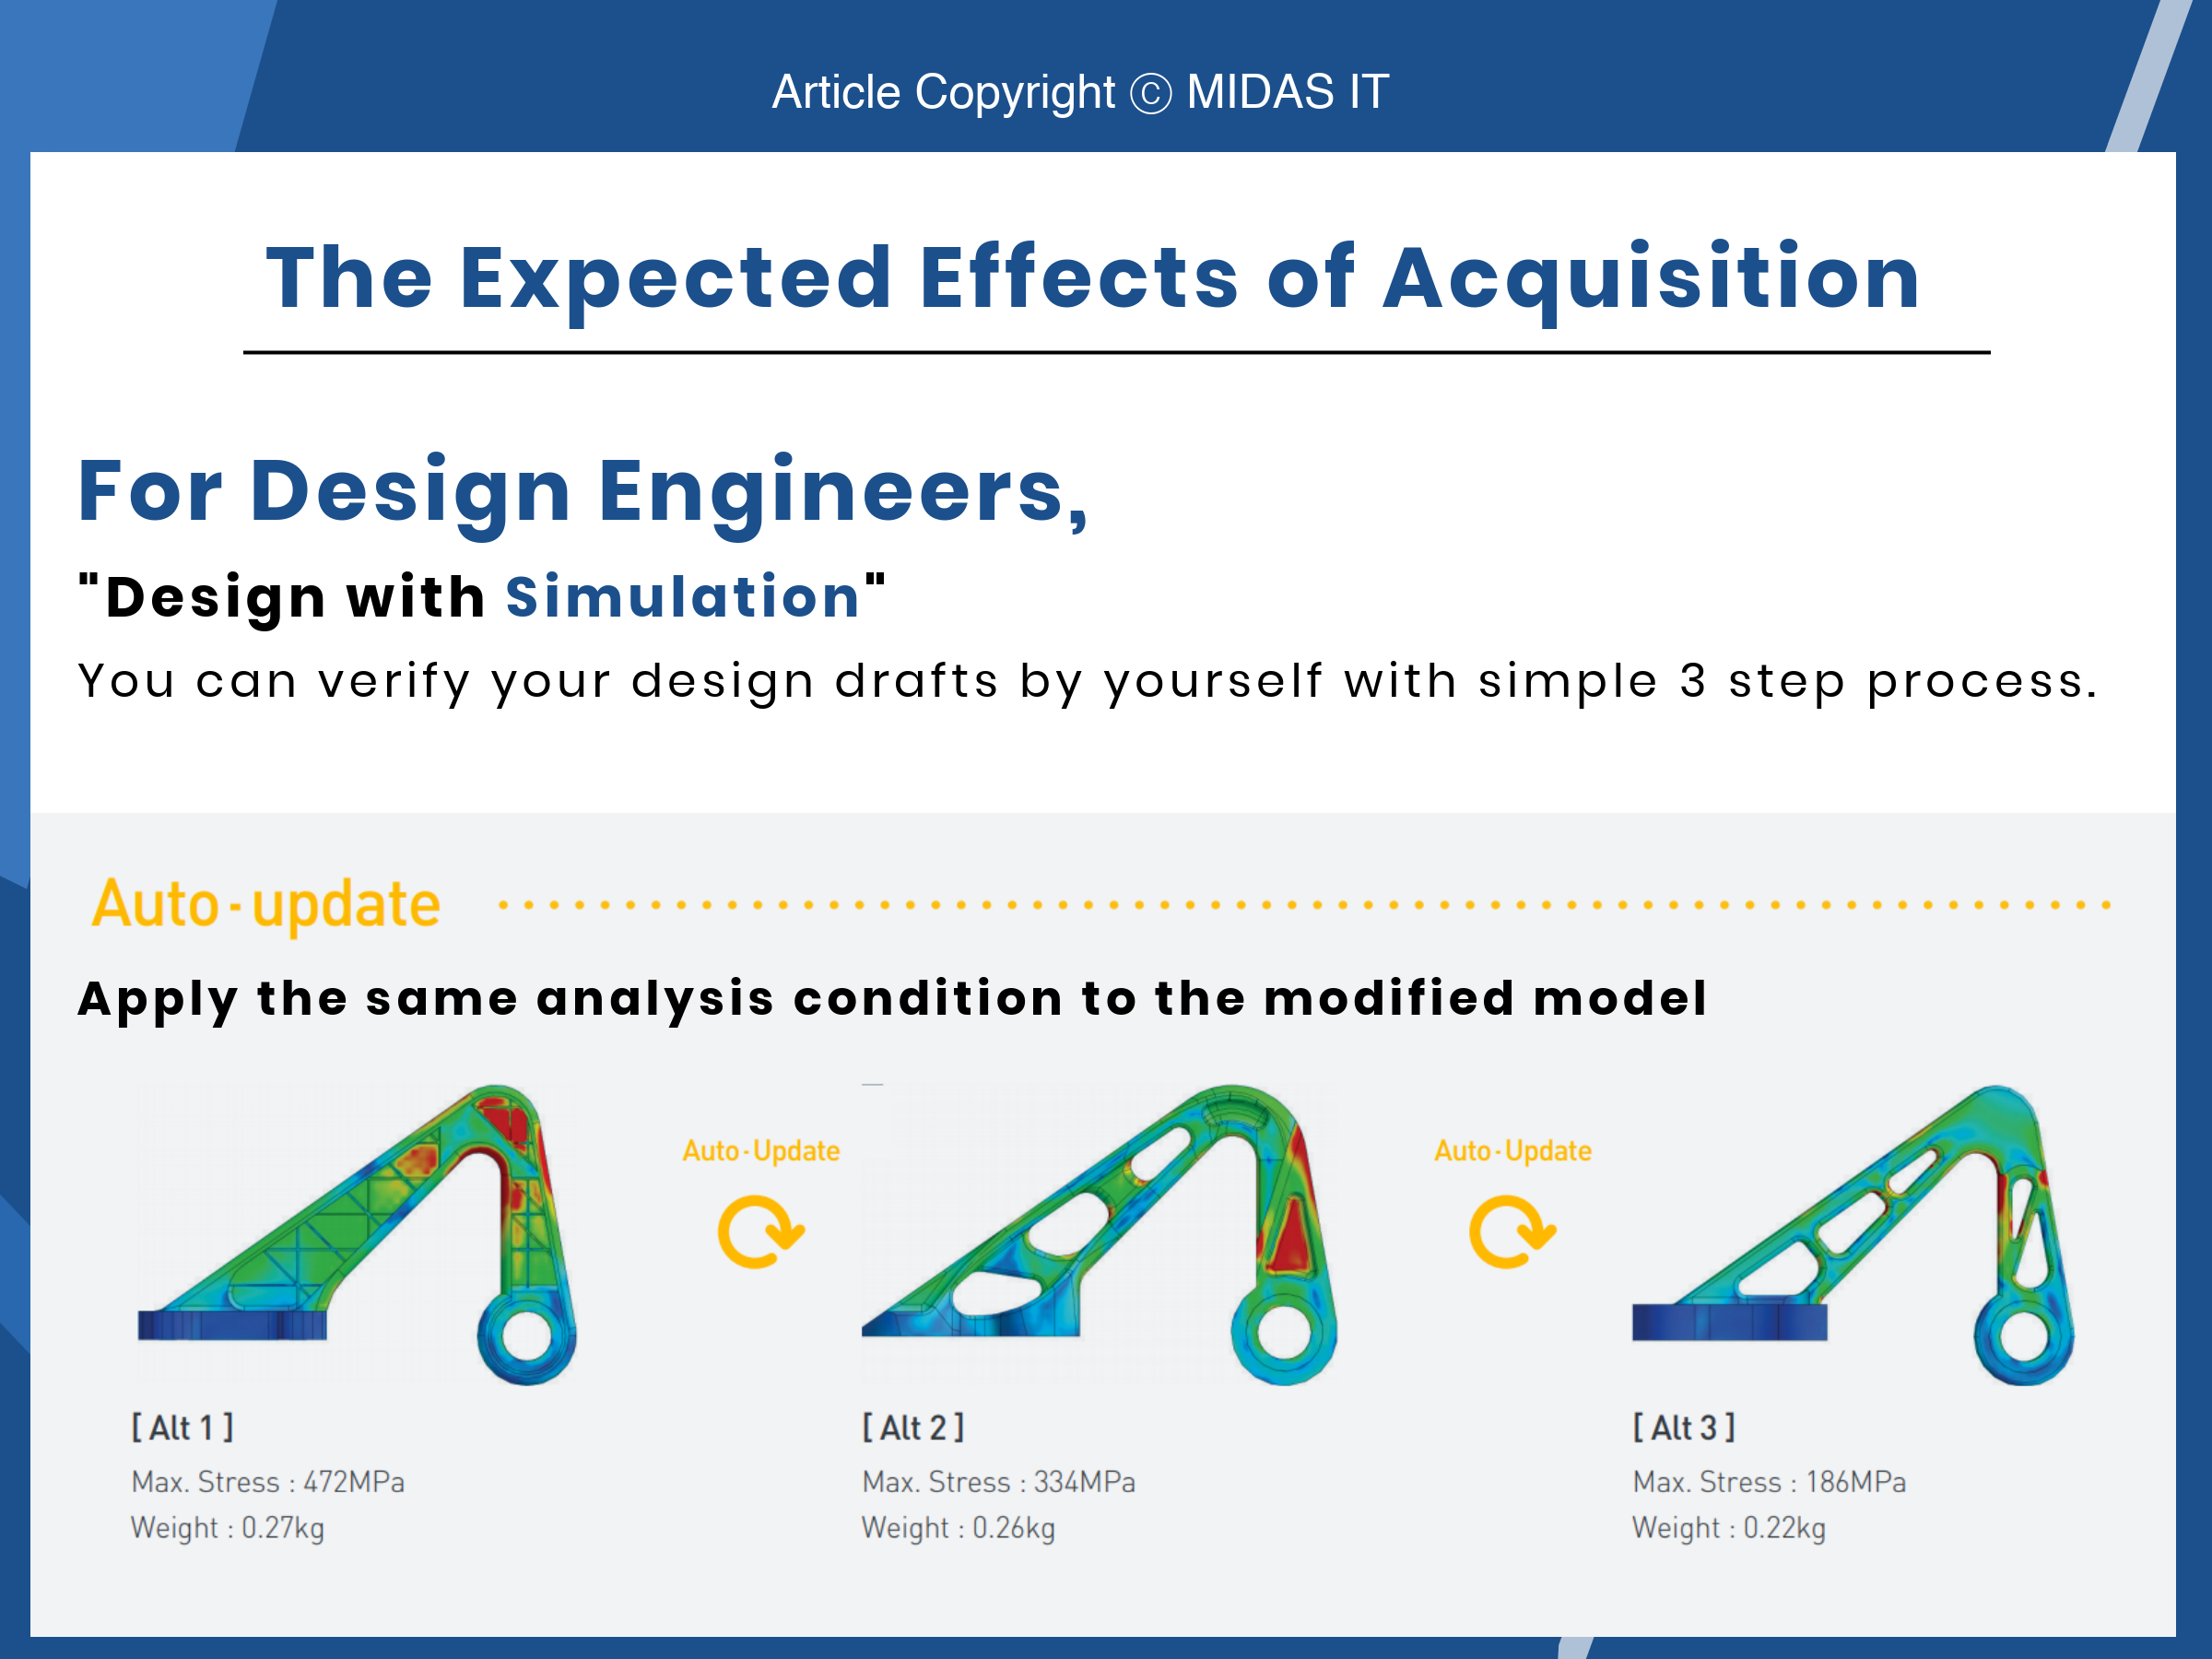 The expected effects of acquisition of MeshFree for design engineers. (3rd Slide)